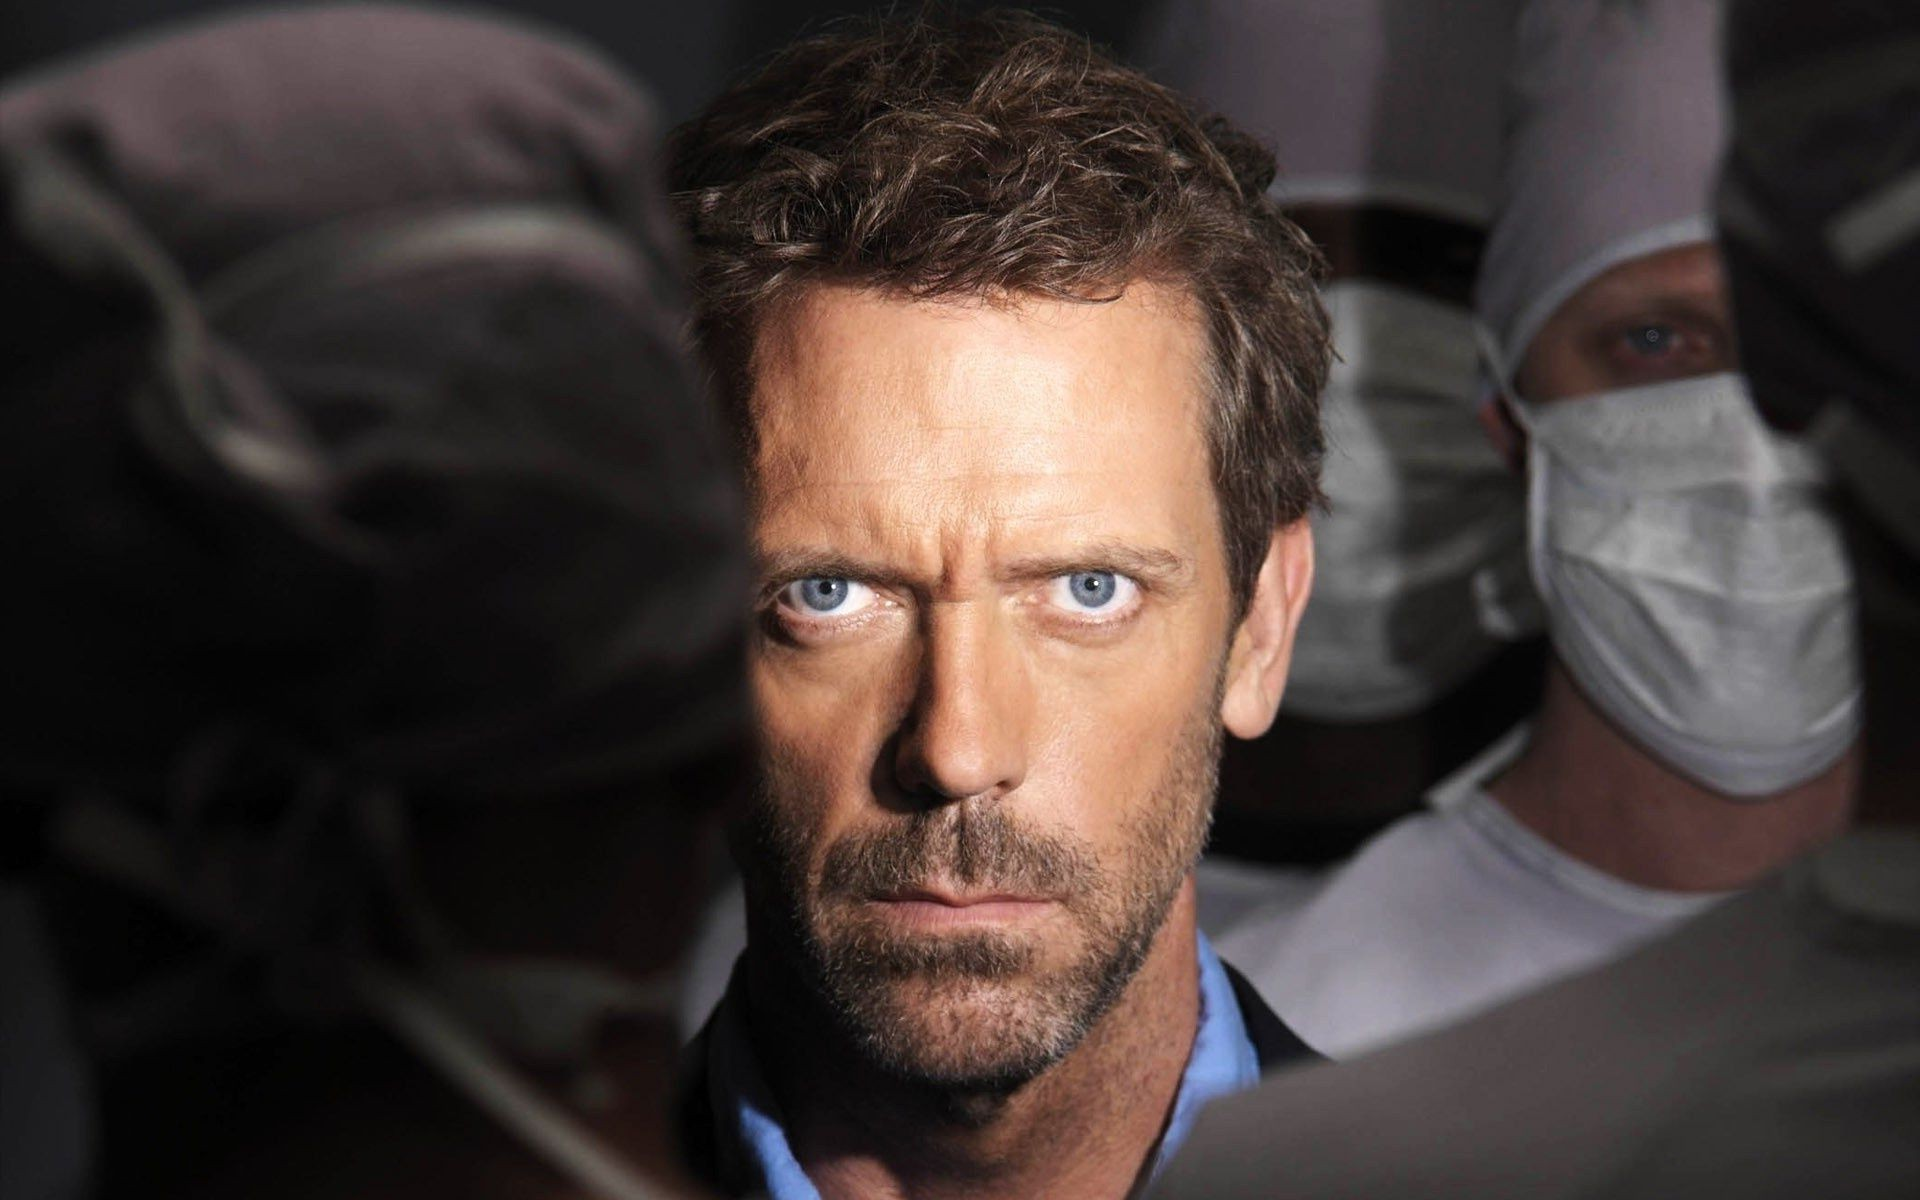 view Dr. house concentration has not shaved man